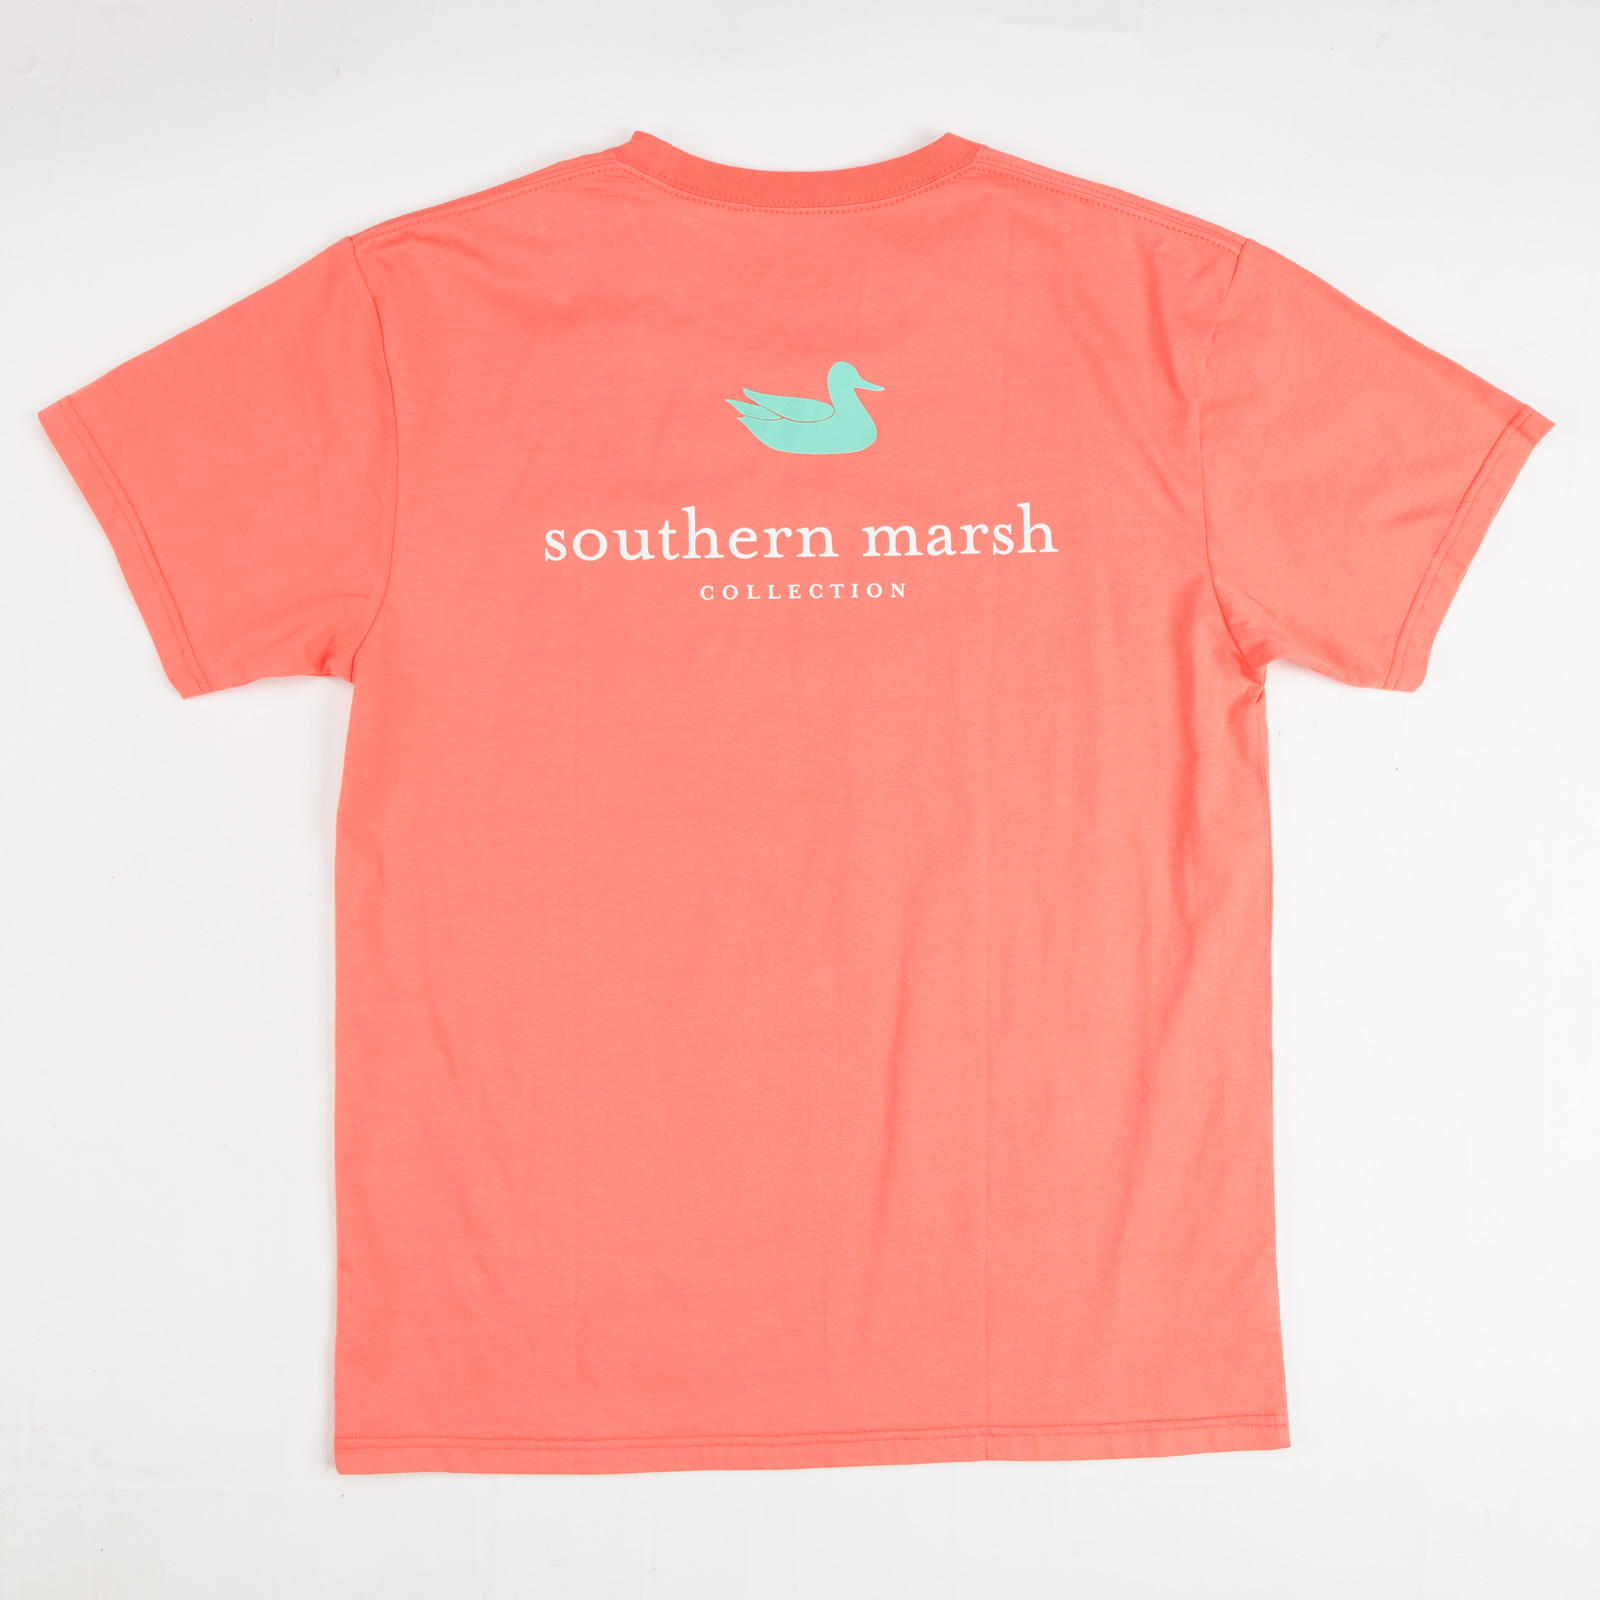 Southern marsh carriages fine clothier baton rouge la for Southern marsh dress shirts on sale